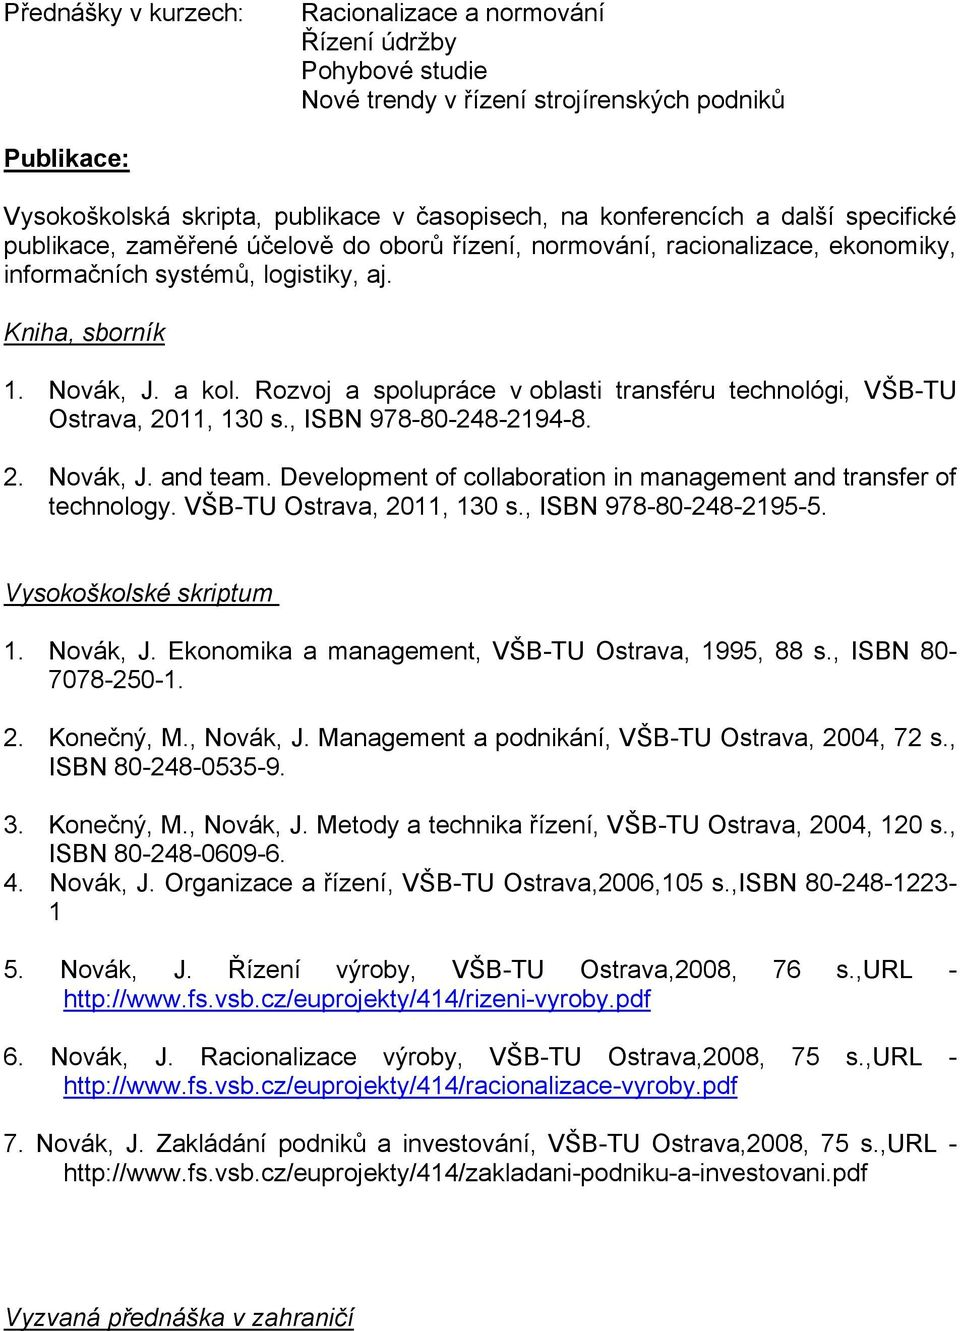 Rozvoj a spolupráce v oblasti transféru technológi, VŠB-TU Ostrava, 2011, 130 s., ISBN 978-80-248-2194-8. 2. Novák, J. and team. Development of collaboration in management and transfer of technology.